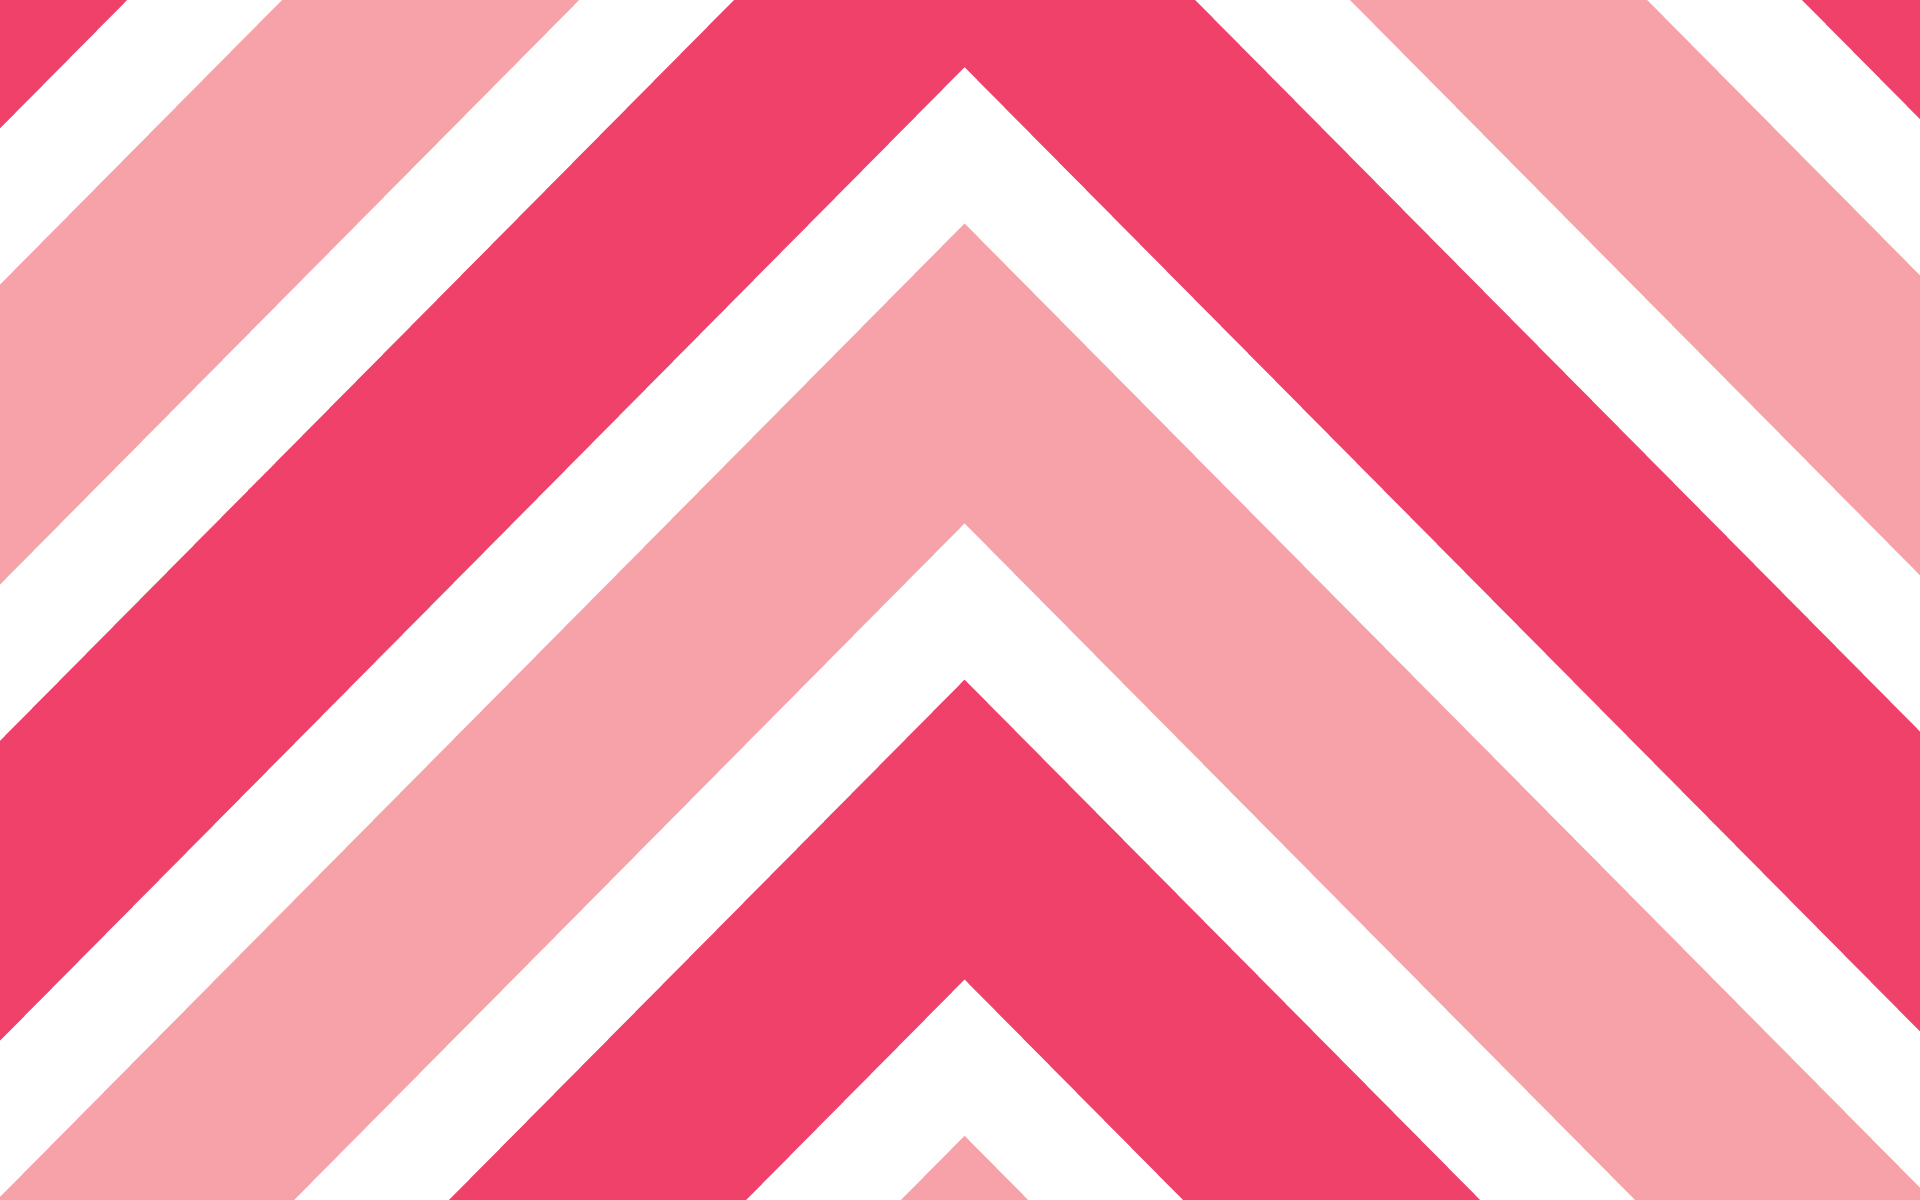 100% HDQ Chevron Wallpapers | Desktop 4K FHDQ Pics